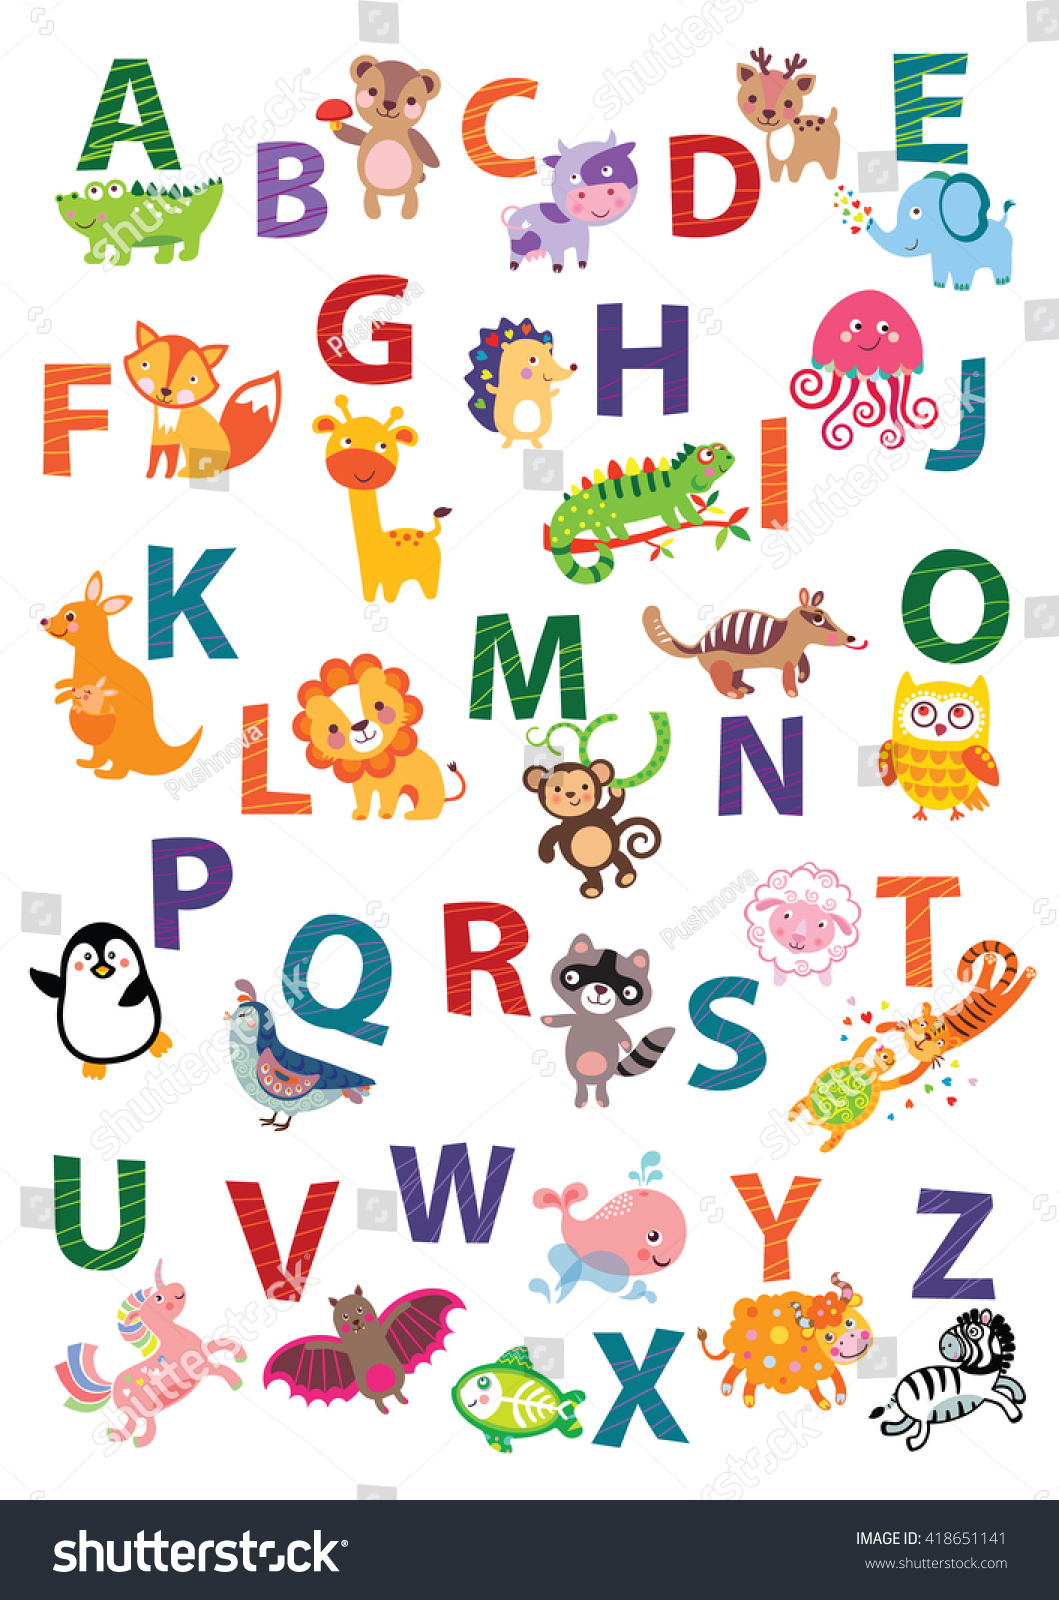 Cute Animal Alphabet English Alphabet Stock Photo